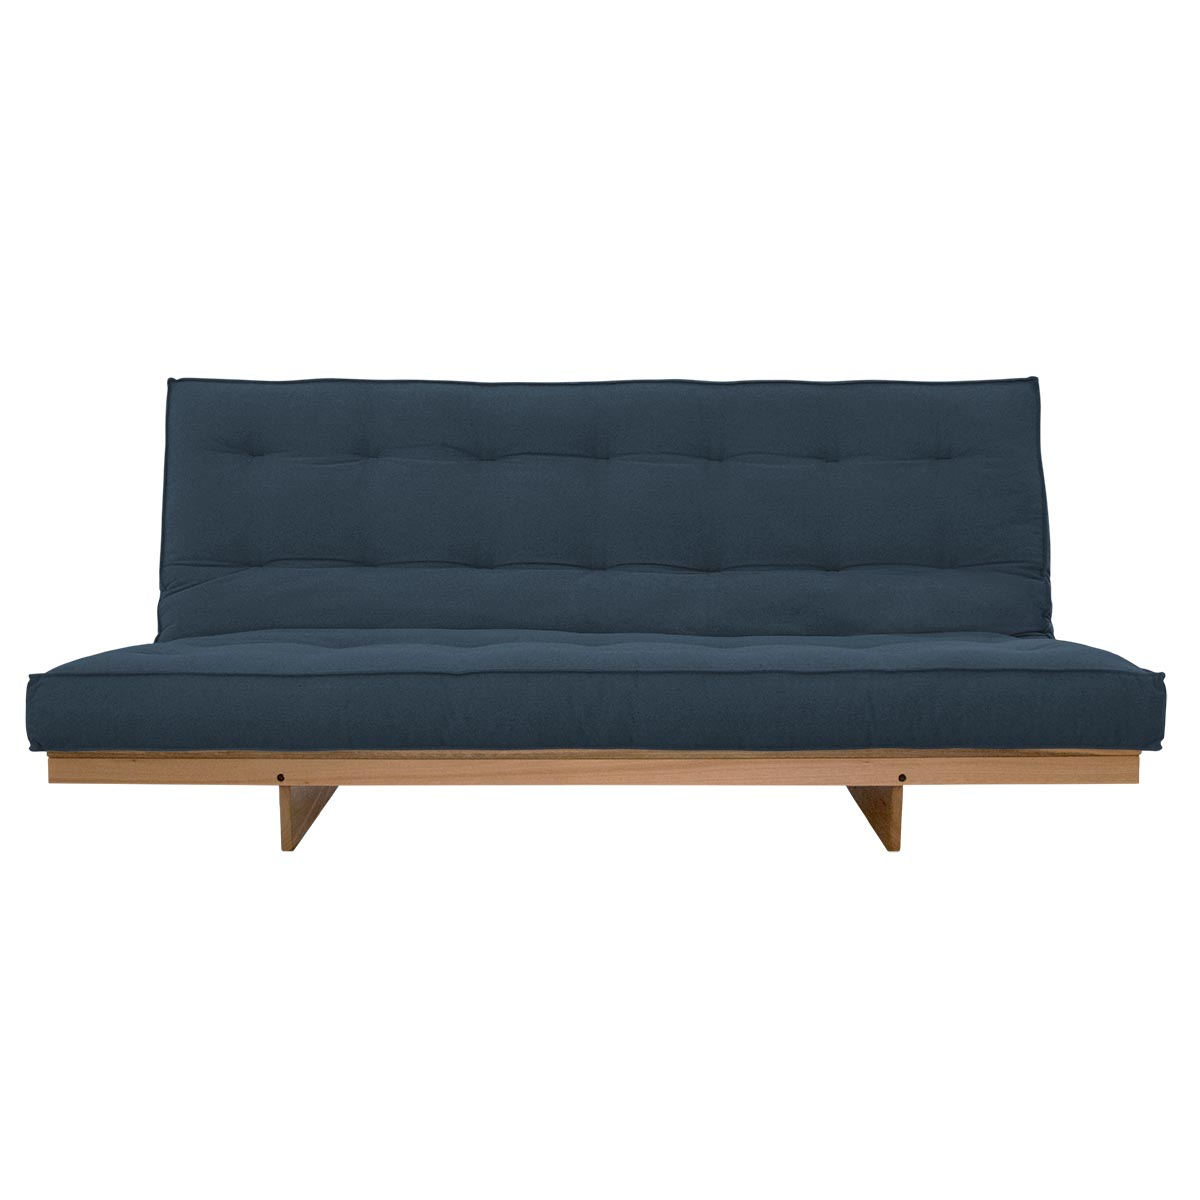 Sofa cama futon for Futon sofa cama plegable